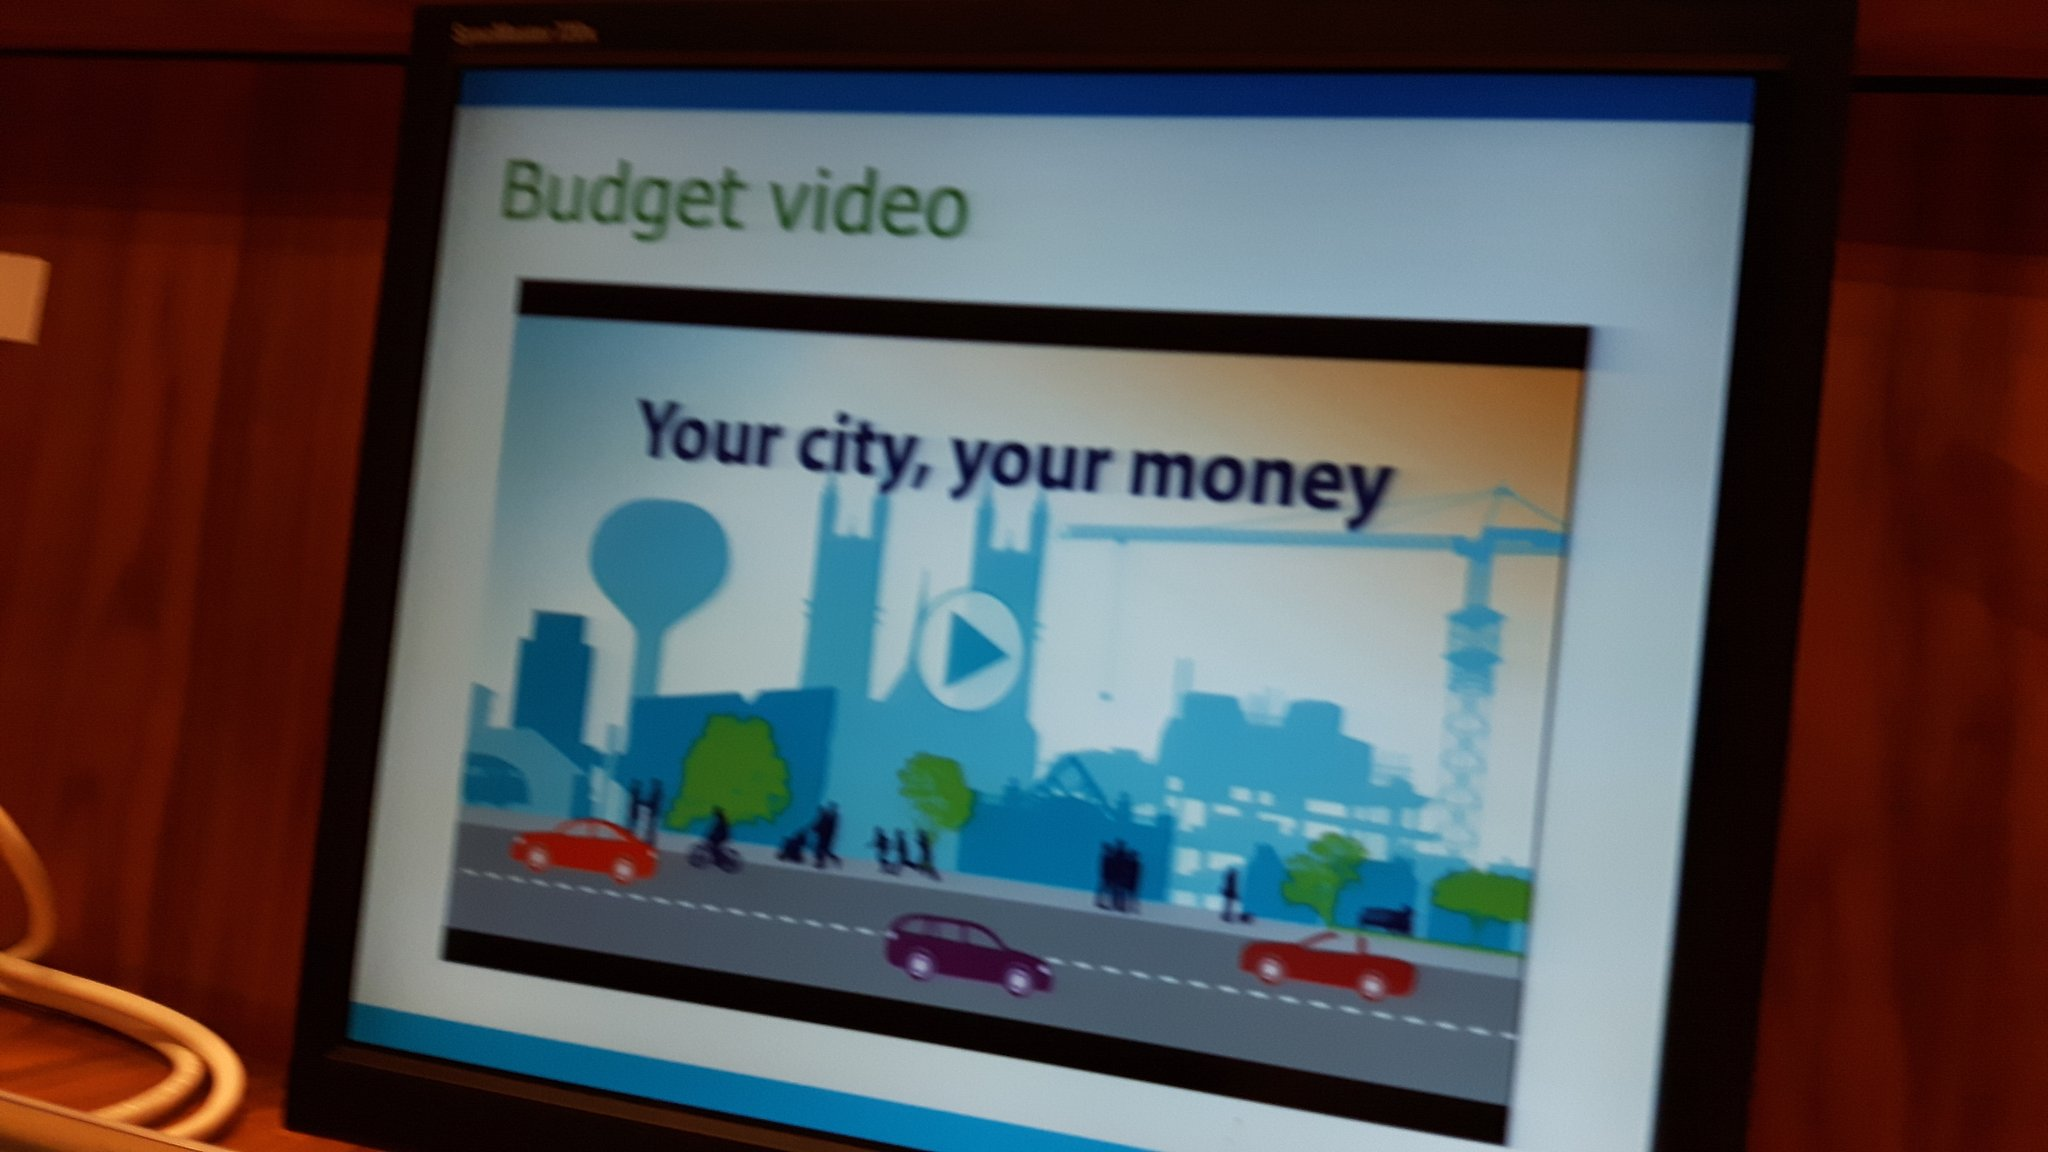 Staff unveil new @cityofguelph budget video to spark community participation. #startingpoint https://t.co/PDoAsTUGDq